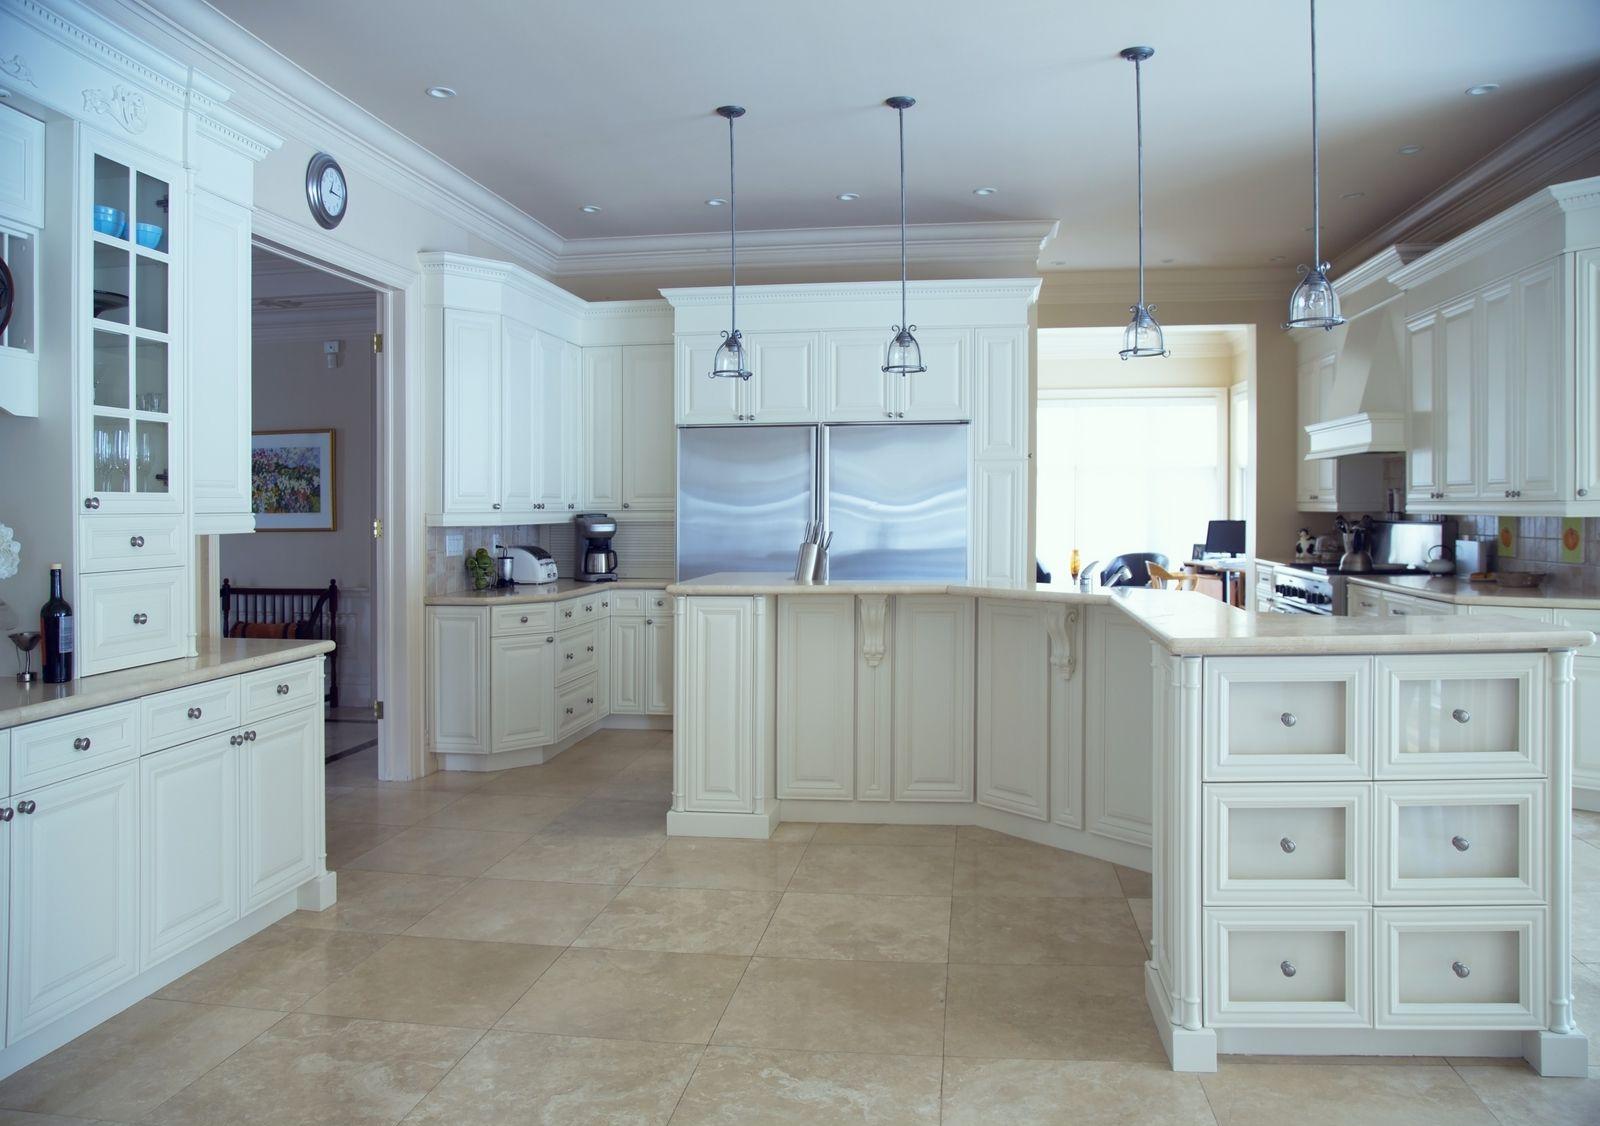 Kitchen Cabinet Refacing Nova Scotia Toronto Painter Residential Painting Contractors